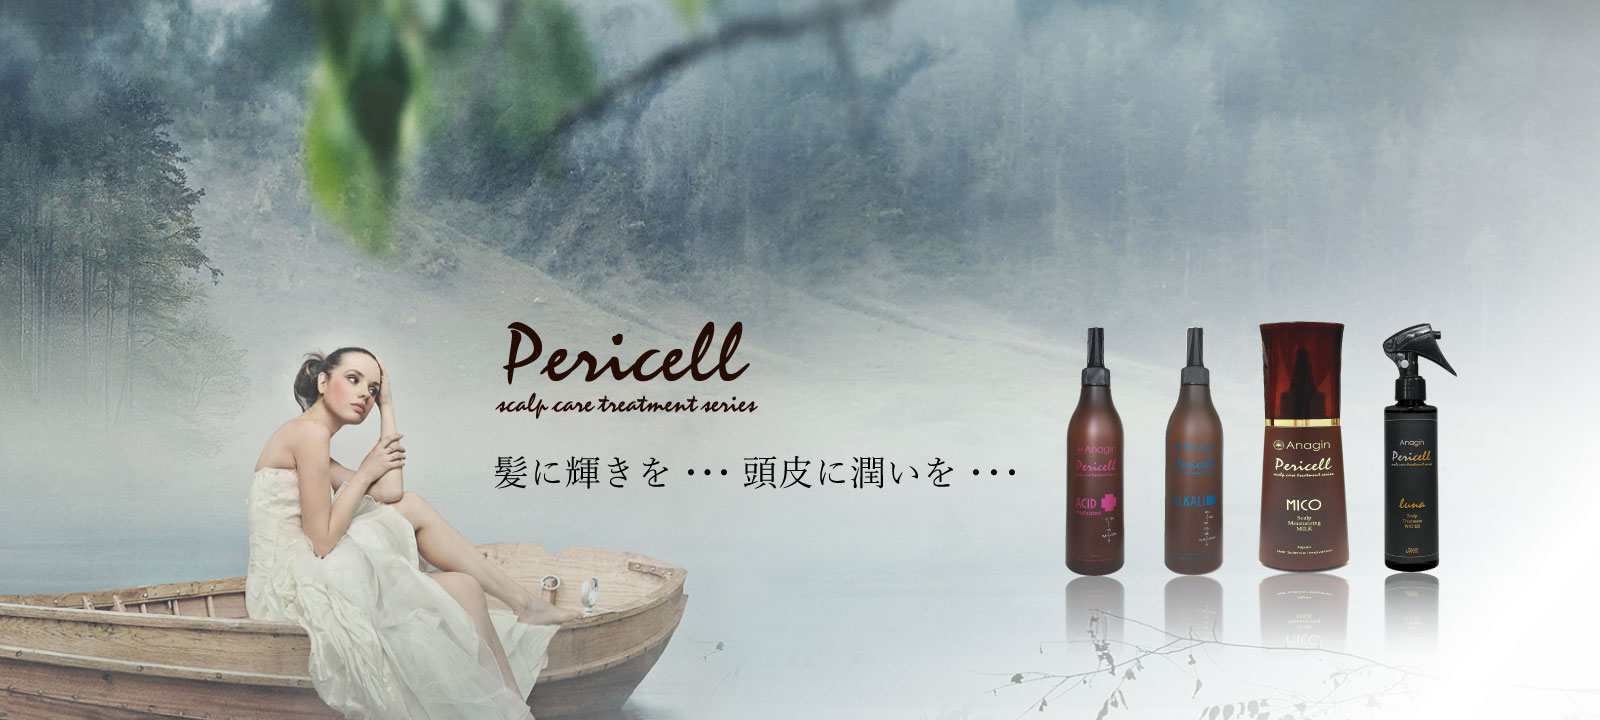 pericell